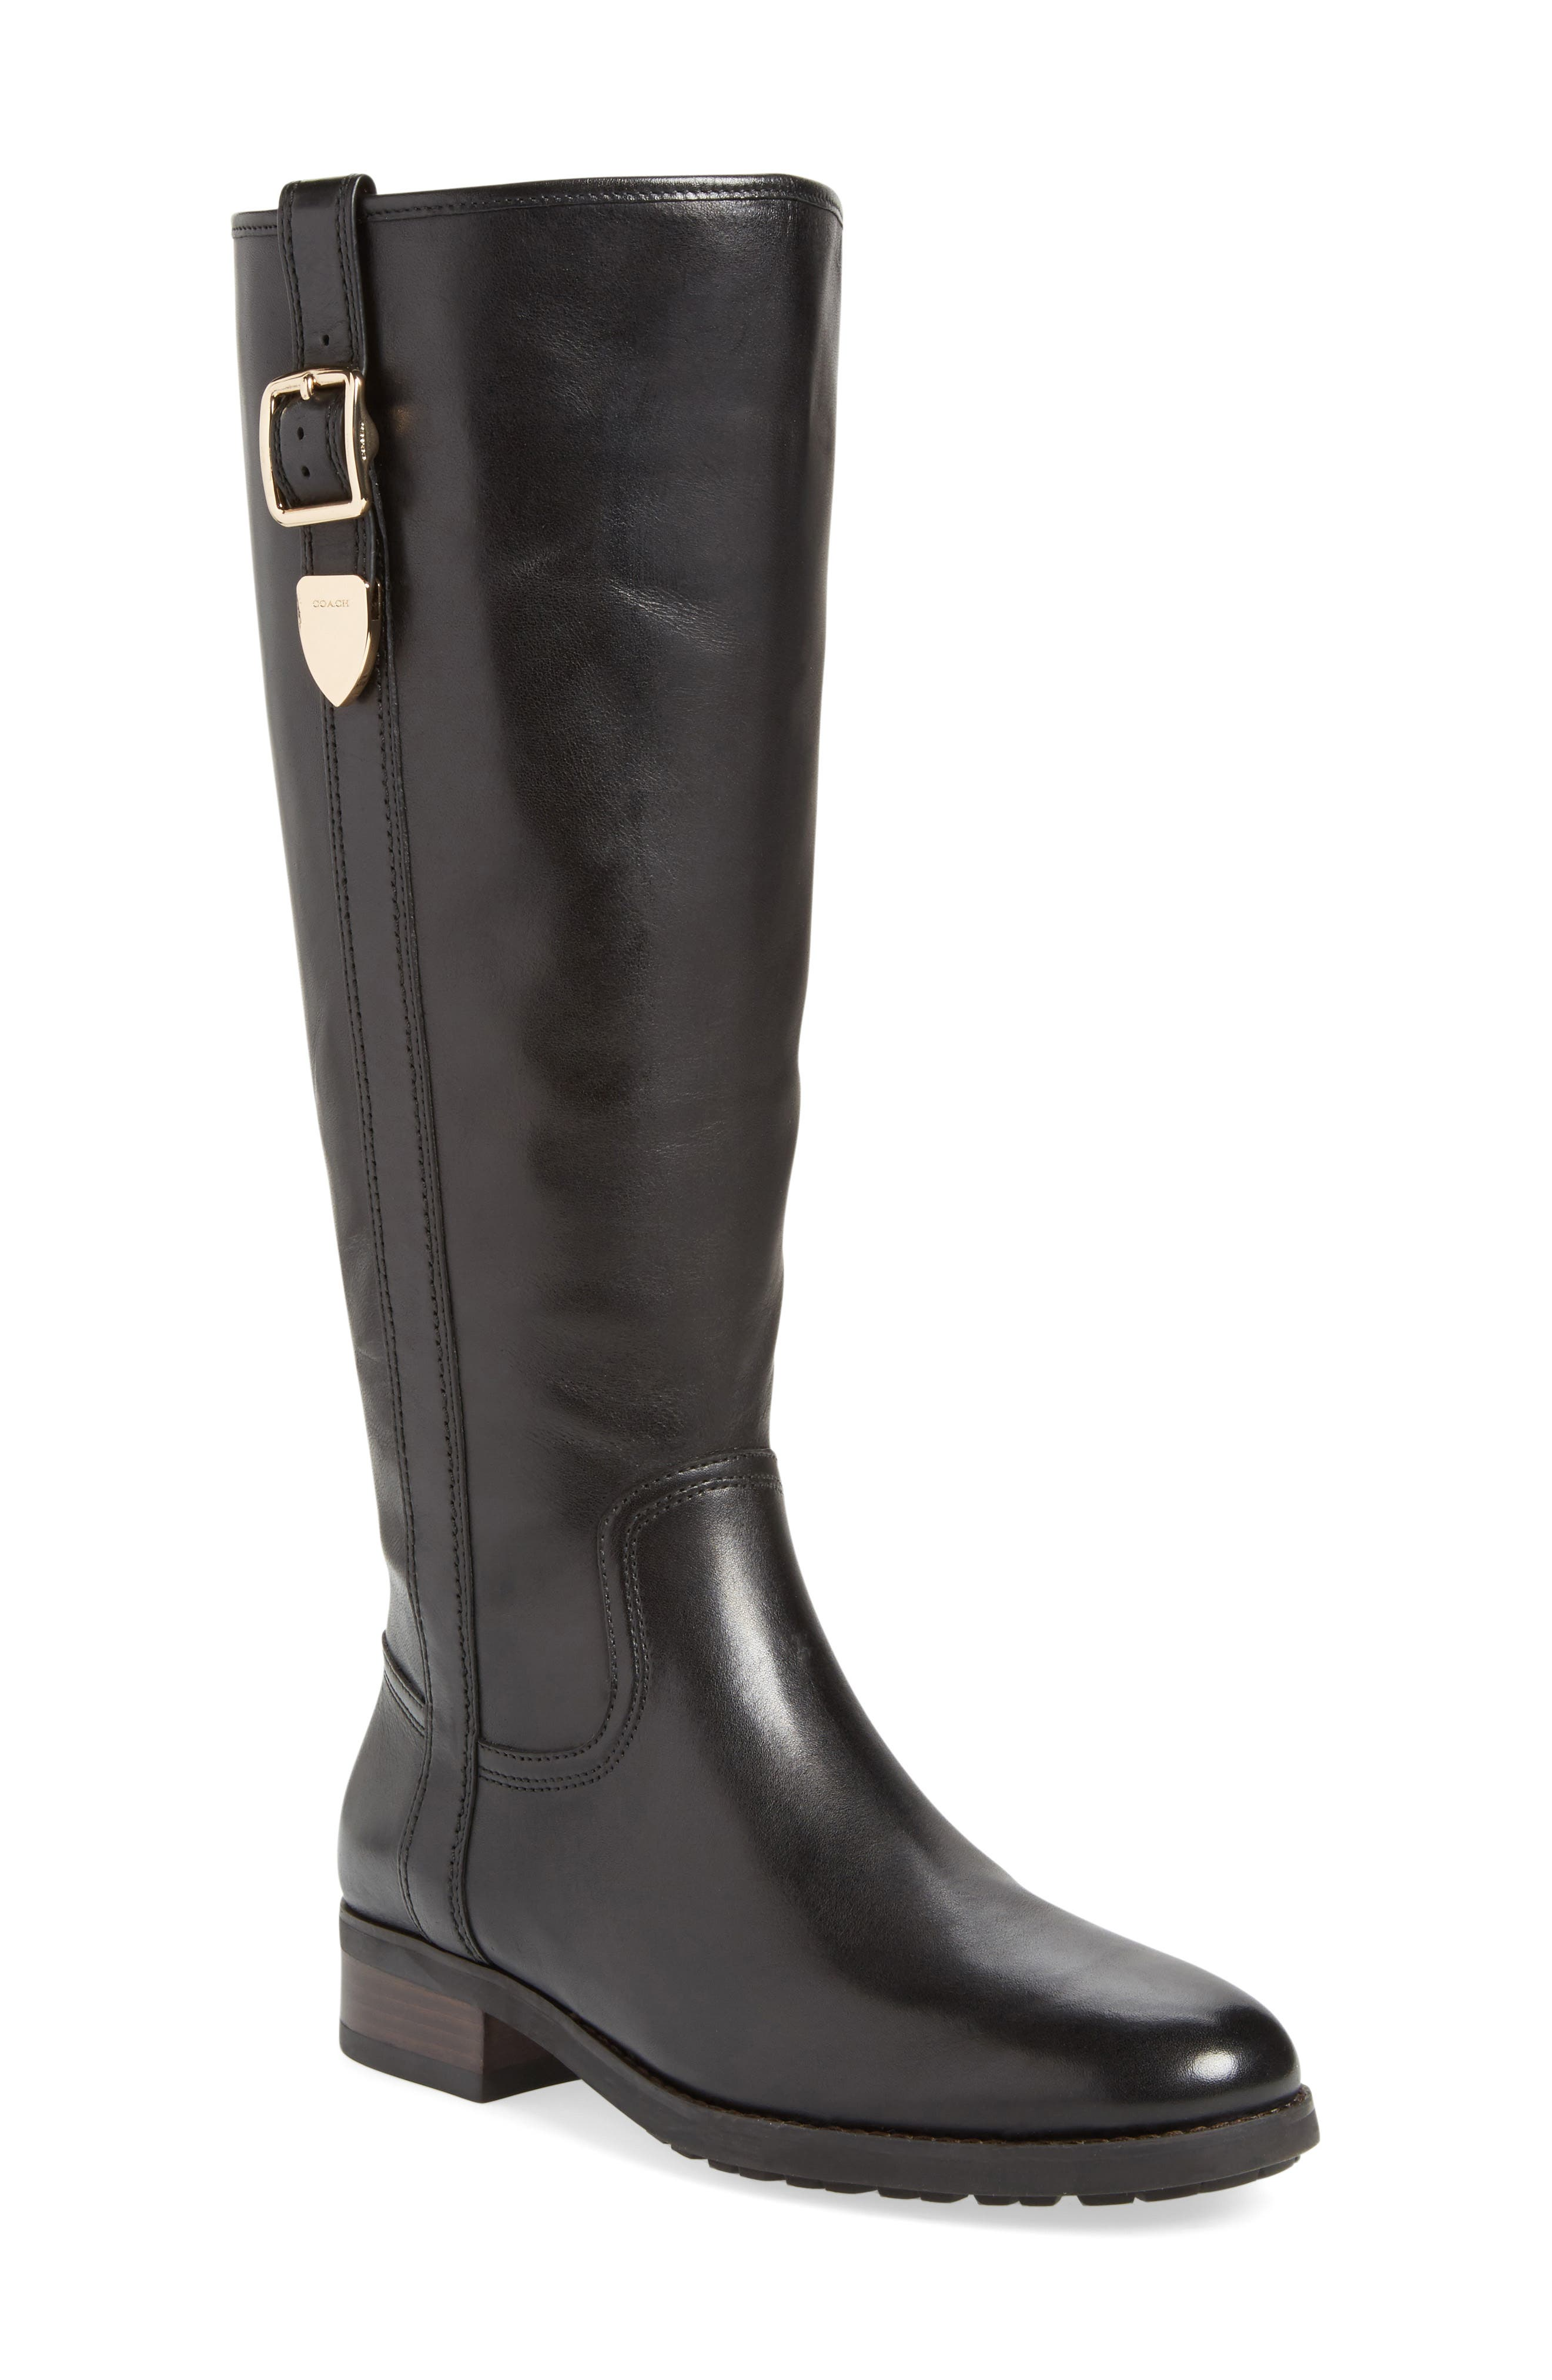 Alternate Image 1 Selected - COACH 'Easton' Tall Boot (Women)